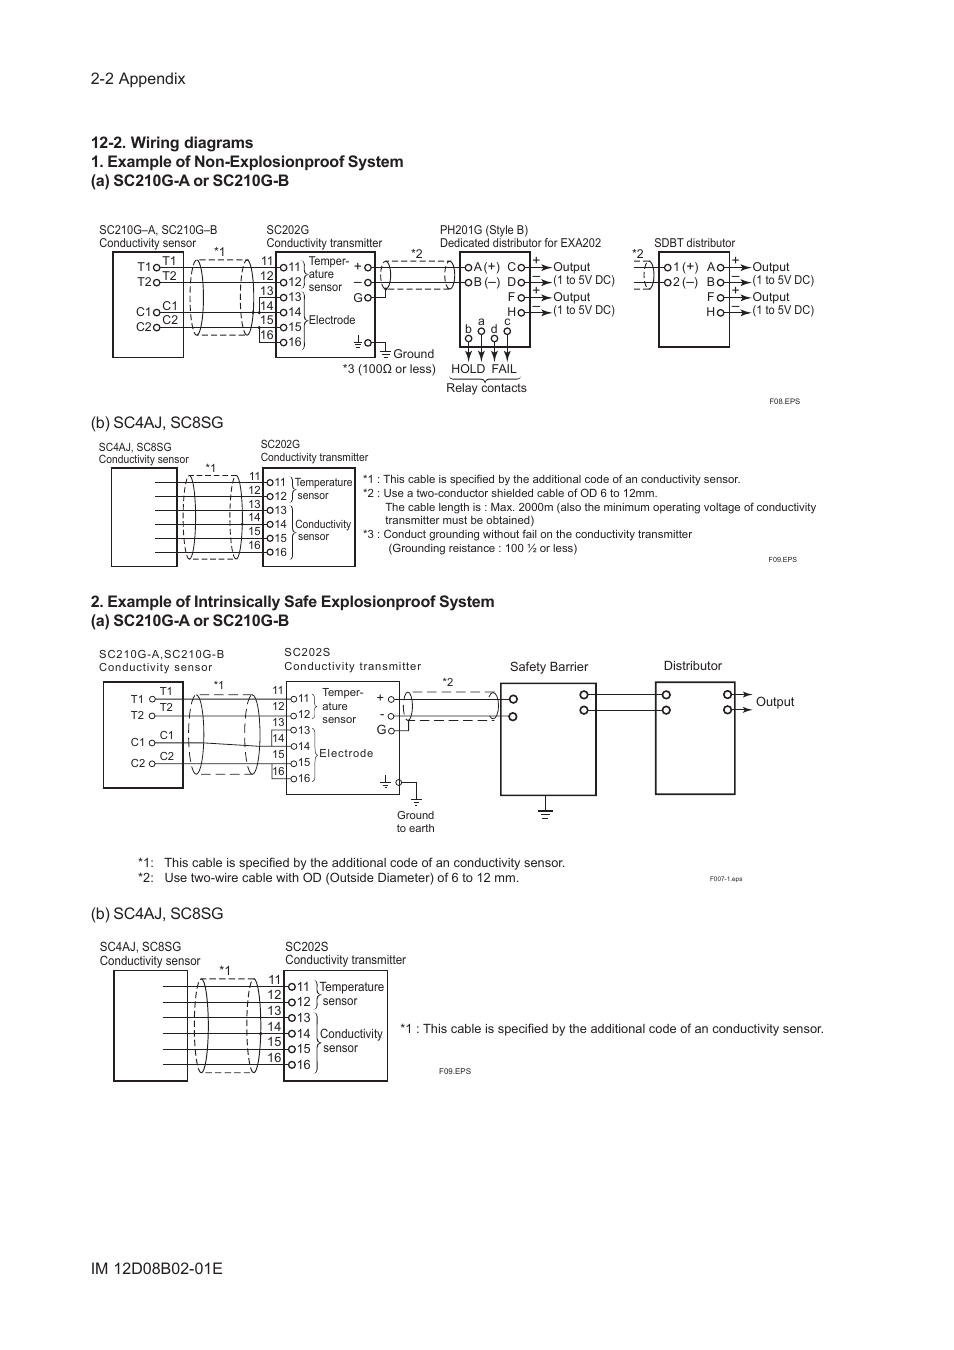 hight resolution of 2 wiring diagrams example of non explosionproof system b sc4aj sc8sg yokogawa exa sc202 2 wire conductivity transmitter analyzer user manual page